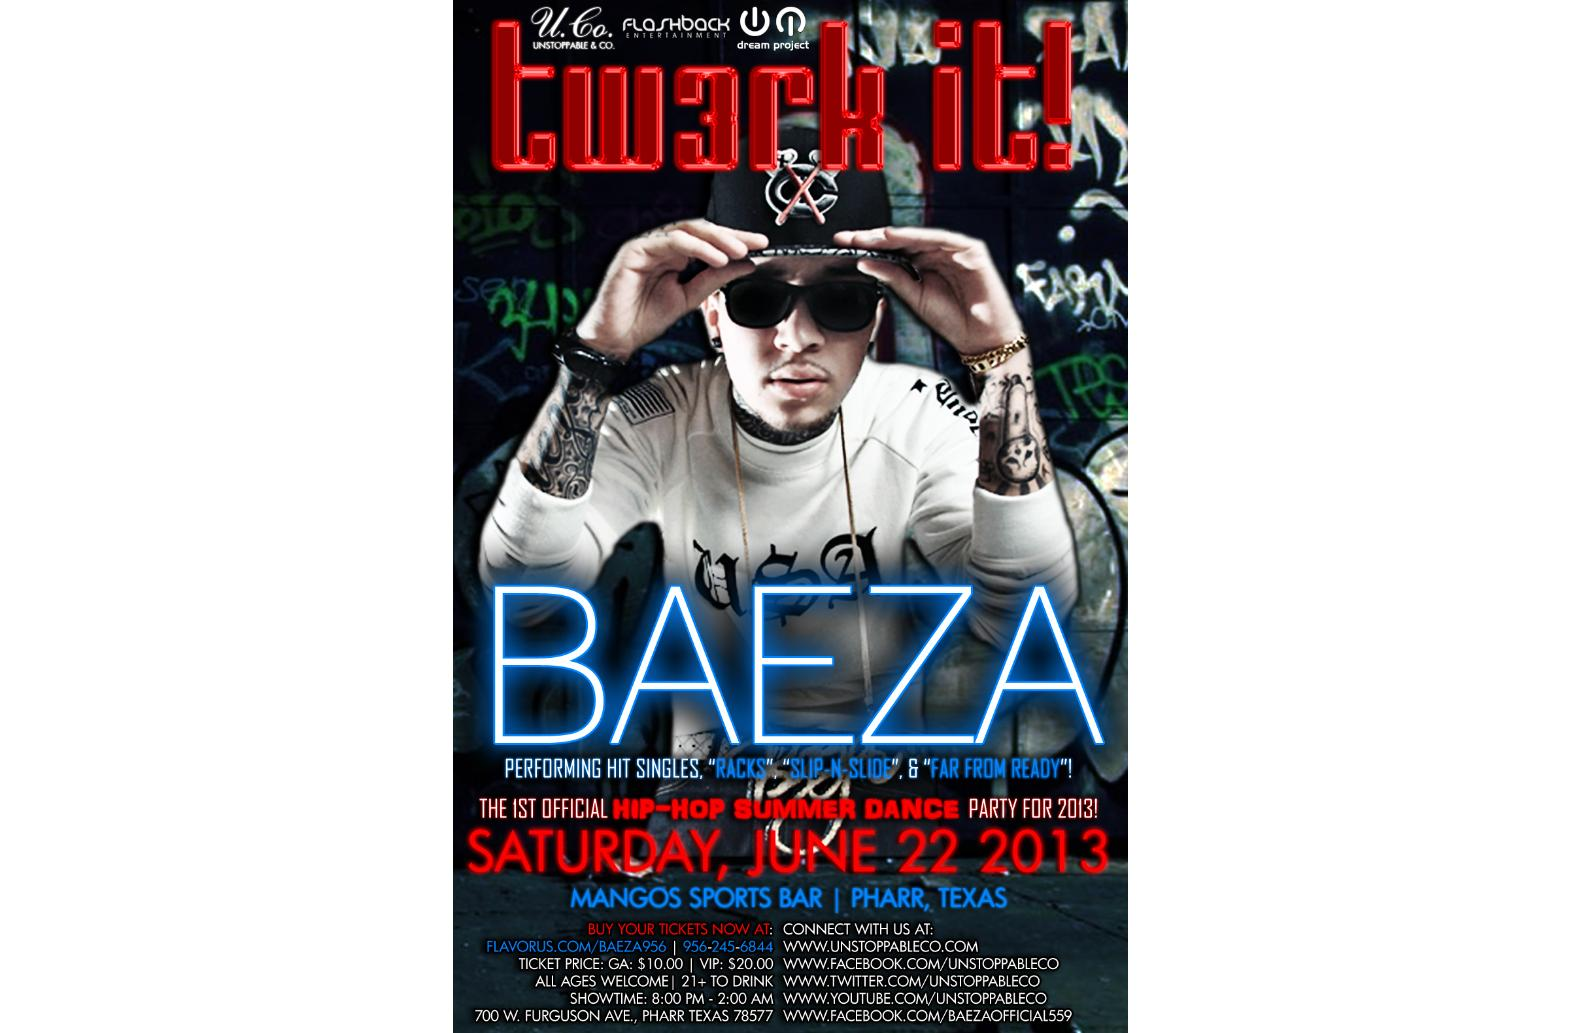 Baeza Tour Dates